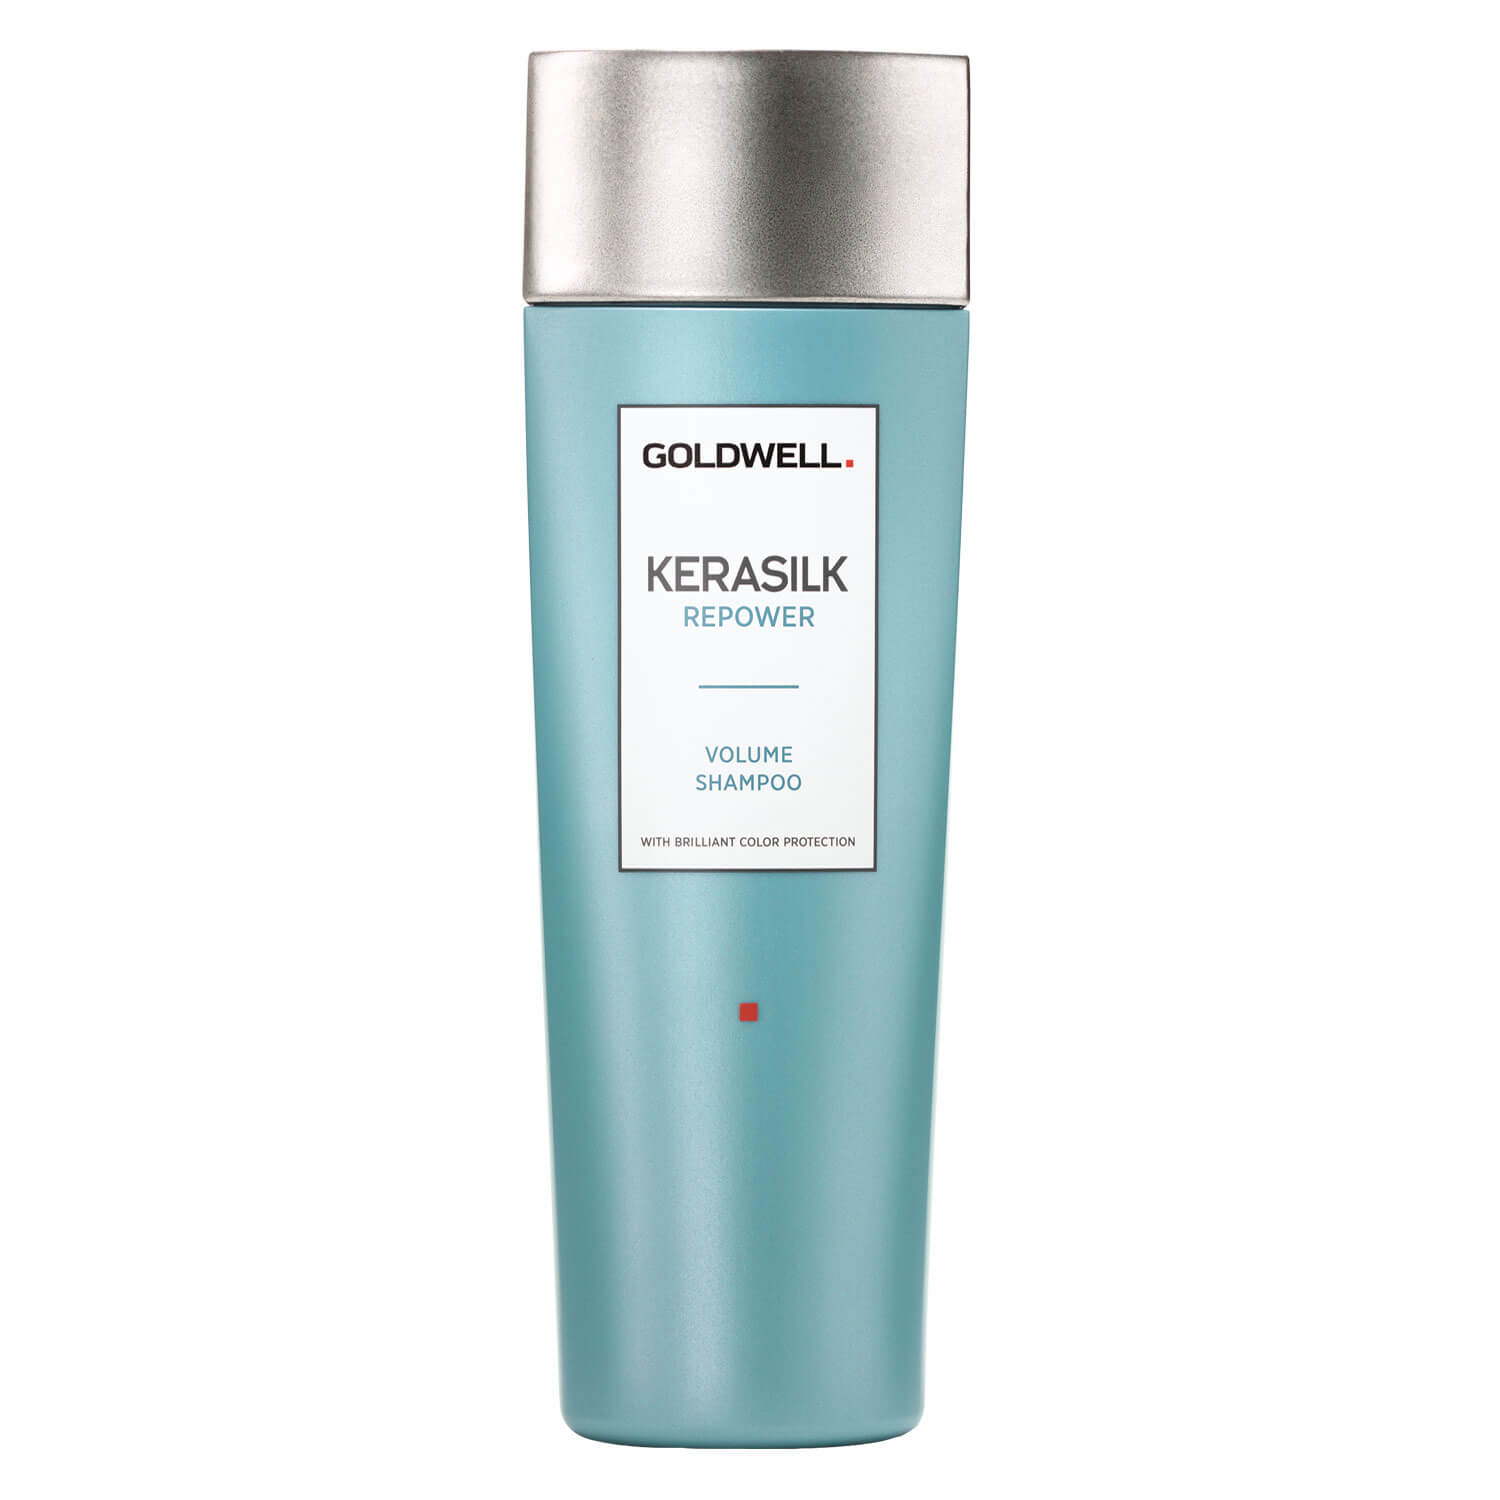 Kerasilk Repower Volume - Shampoo - 250ml